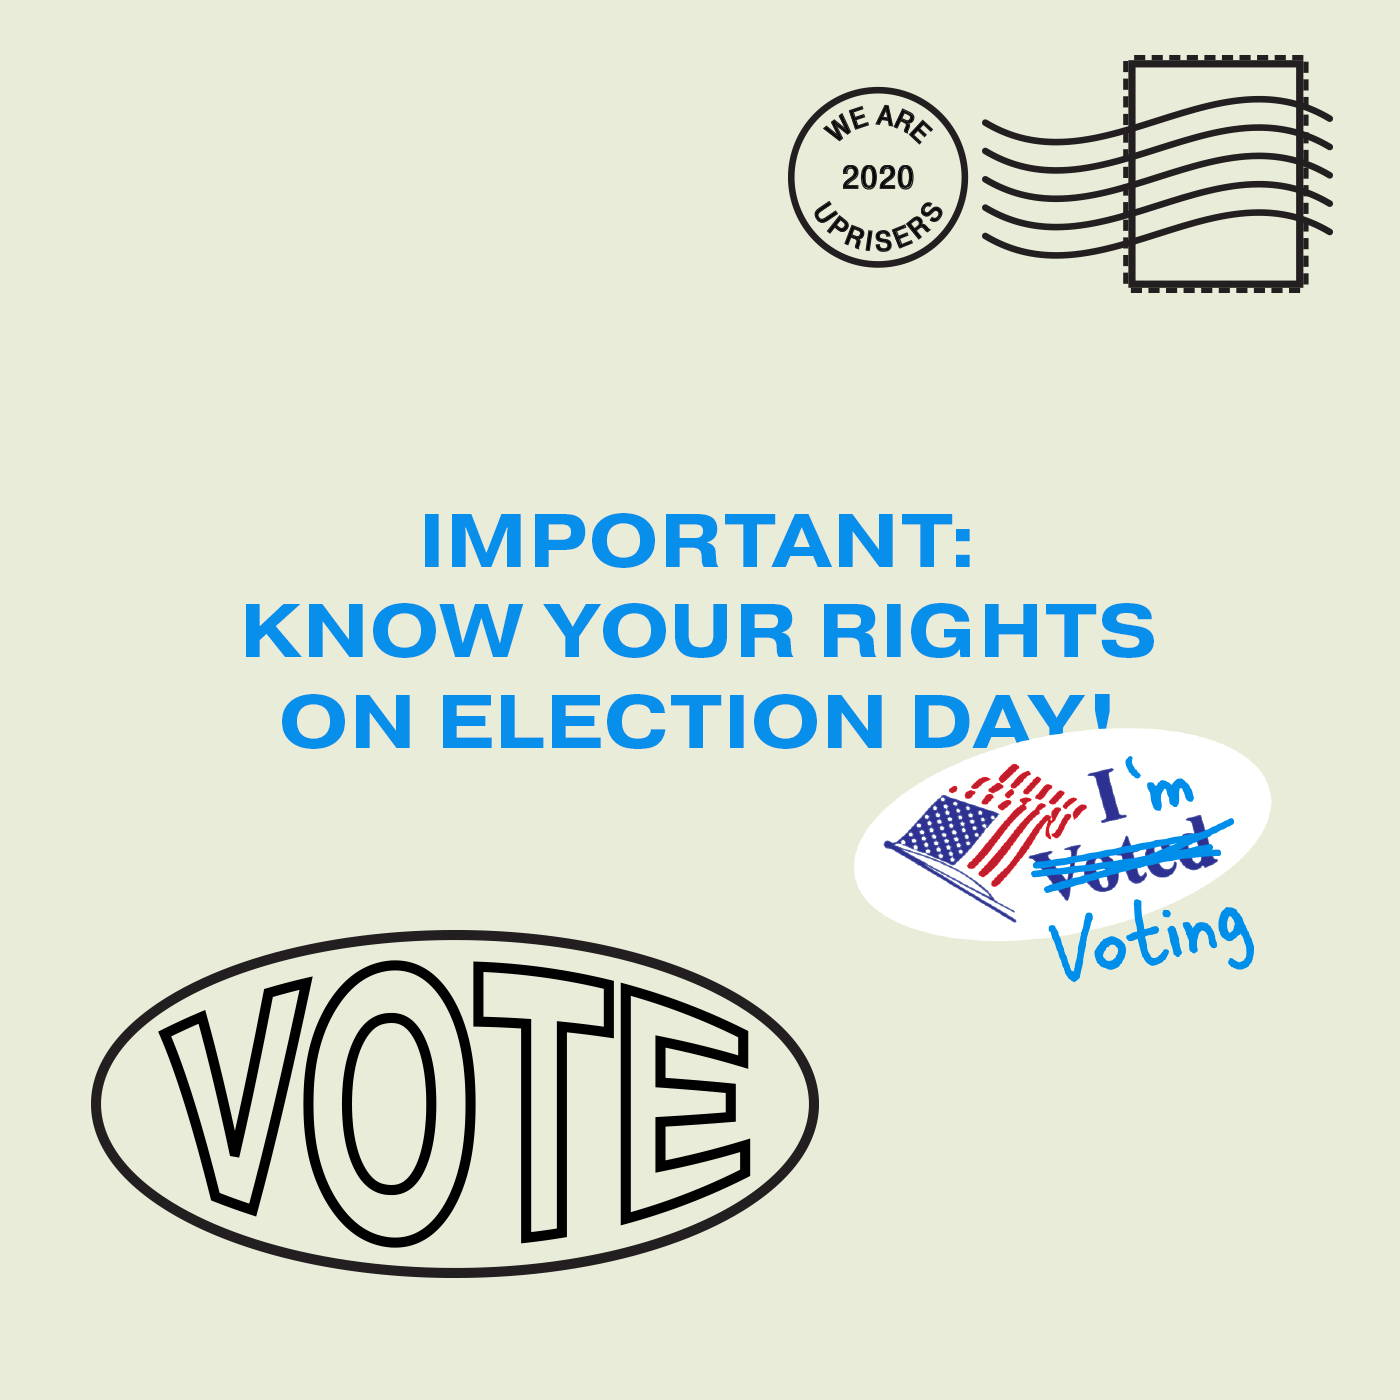 voting rights on election day 2020 uprisers